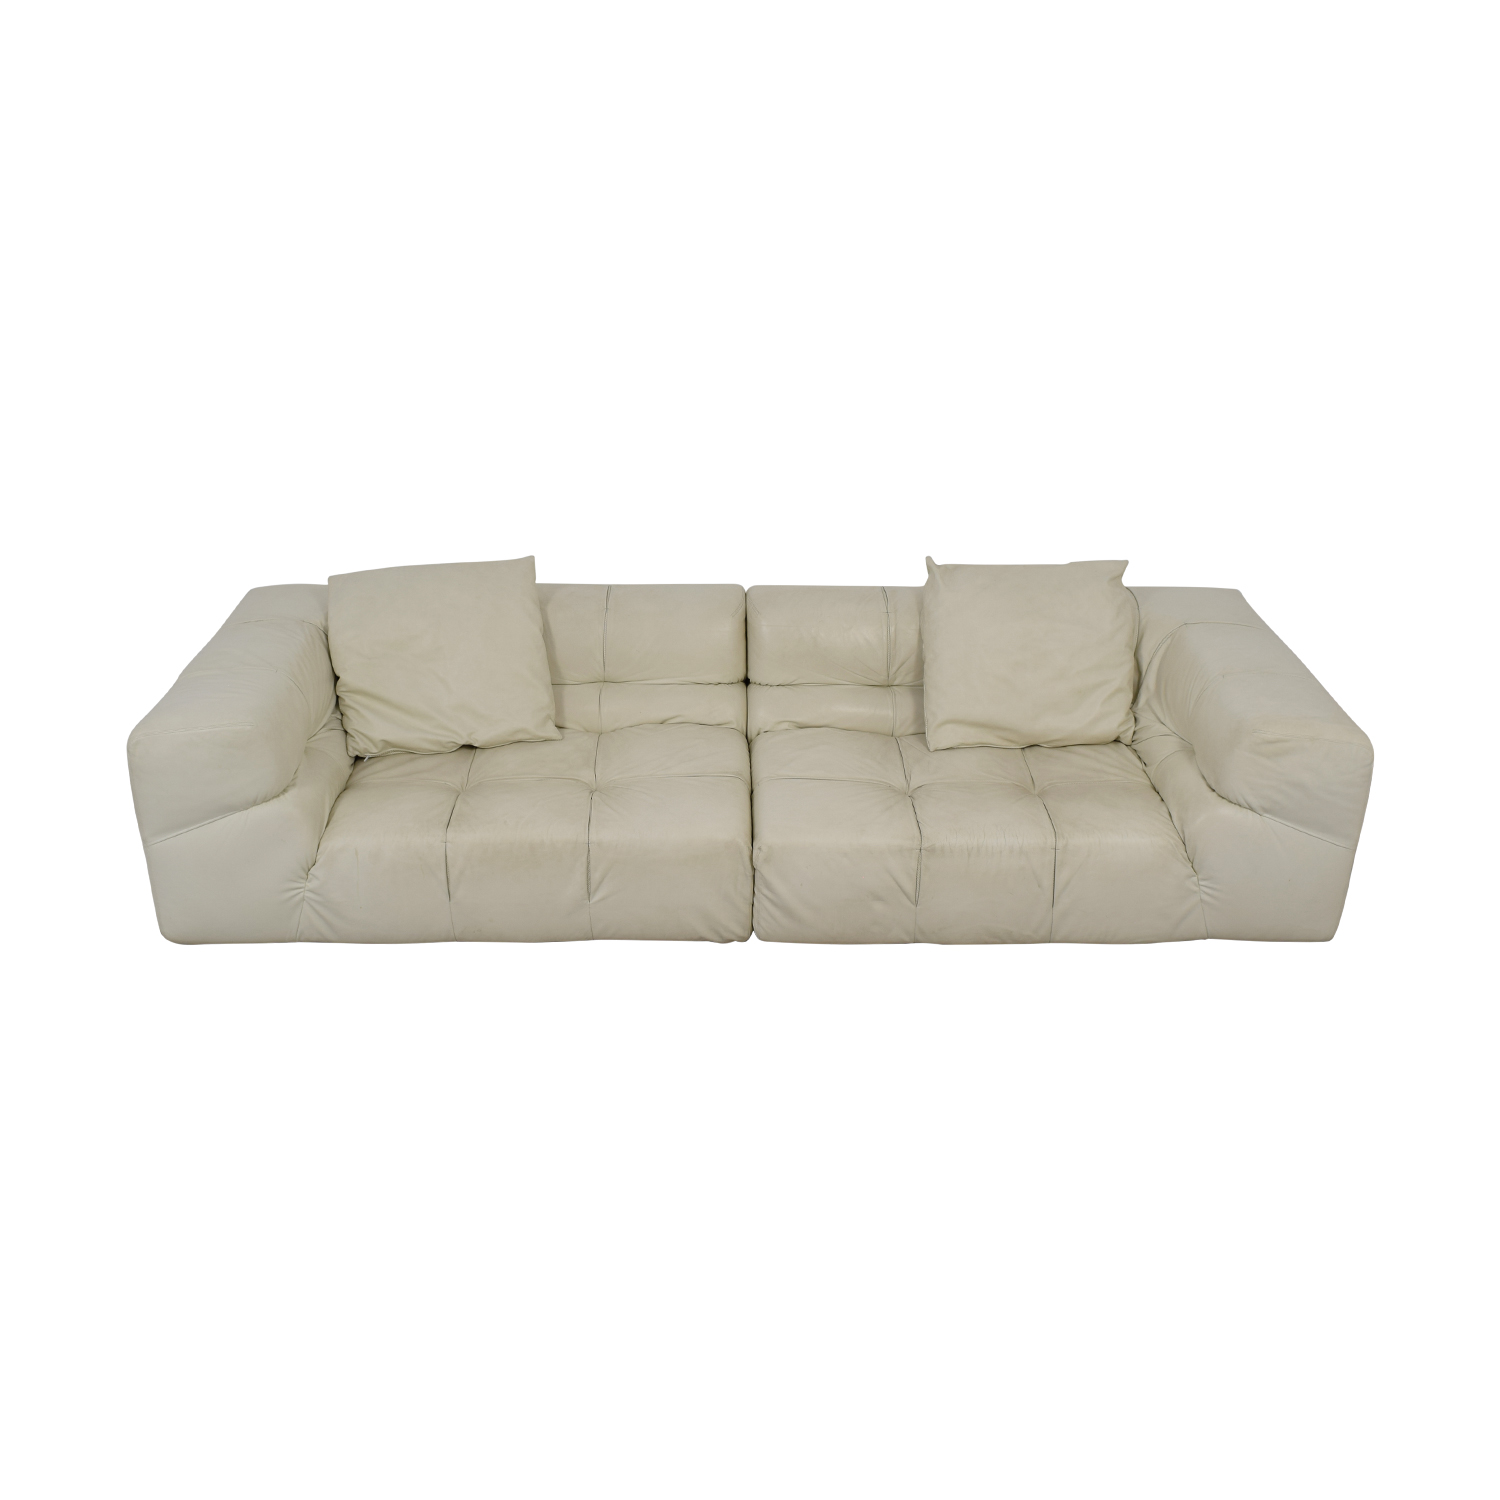 buy Ligne Roset White Tufted Leather Couch Ligne Roset